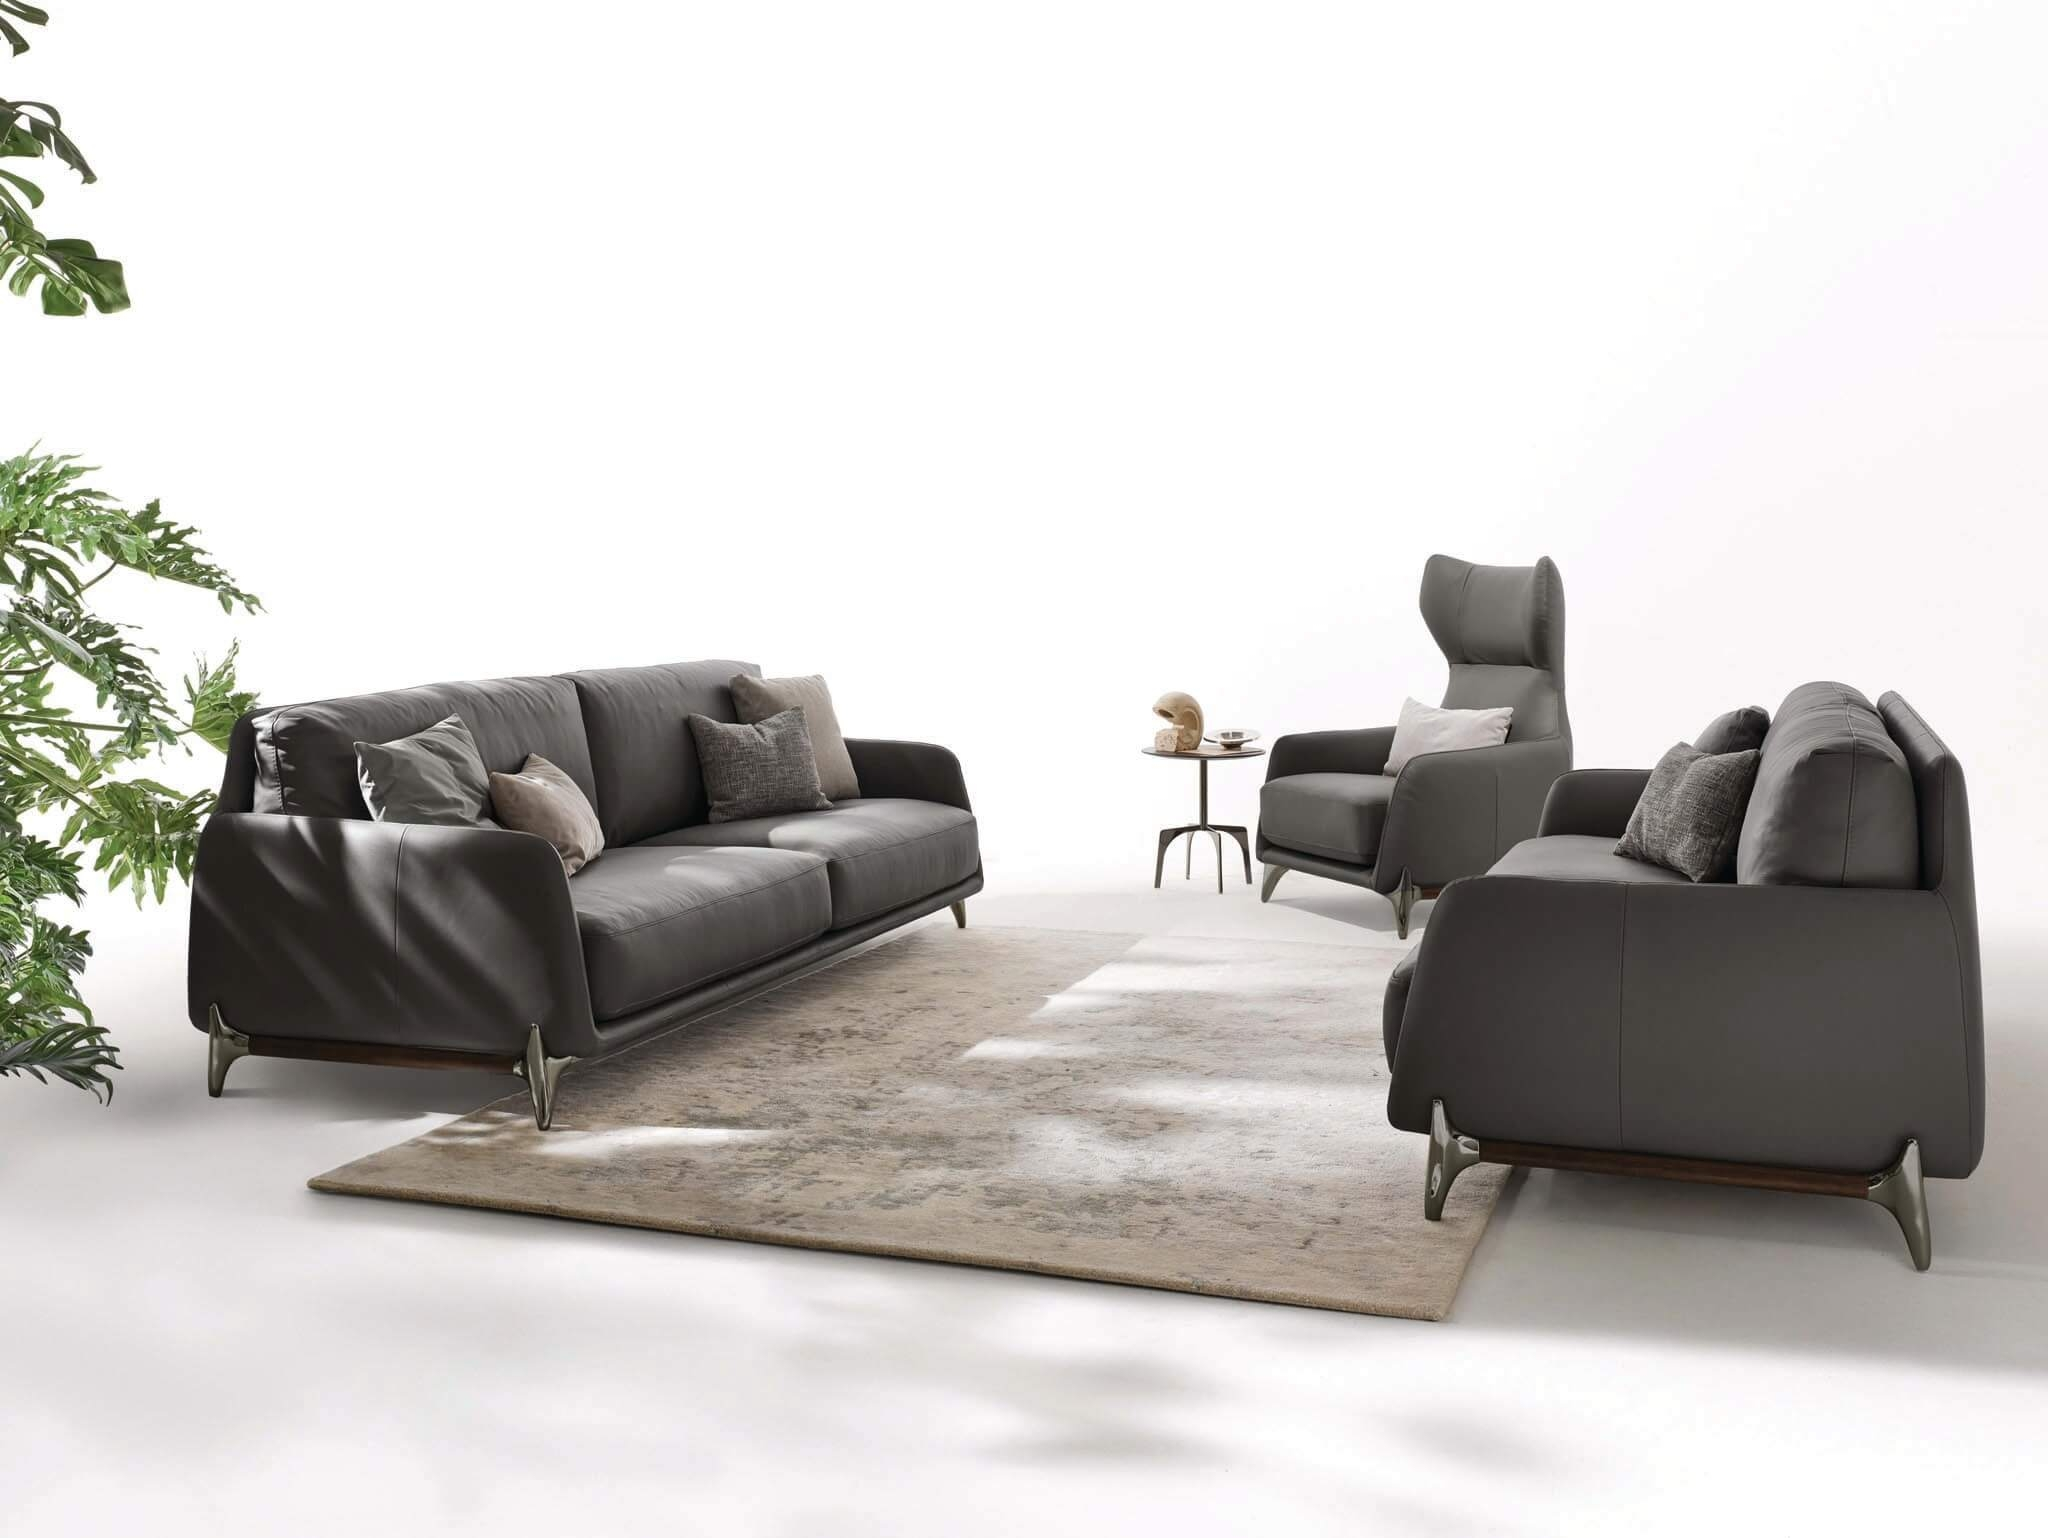 Elliot Sofa Sectional And Loveseat Archisesto Chicago Regarding Elliott Sofa (Image 14 of 15)